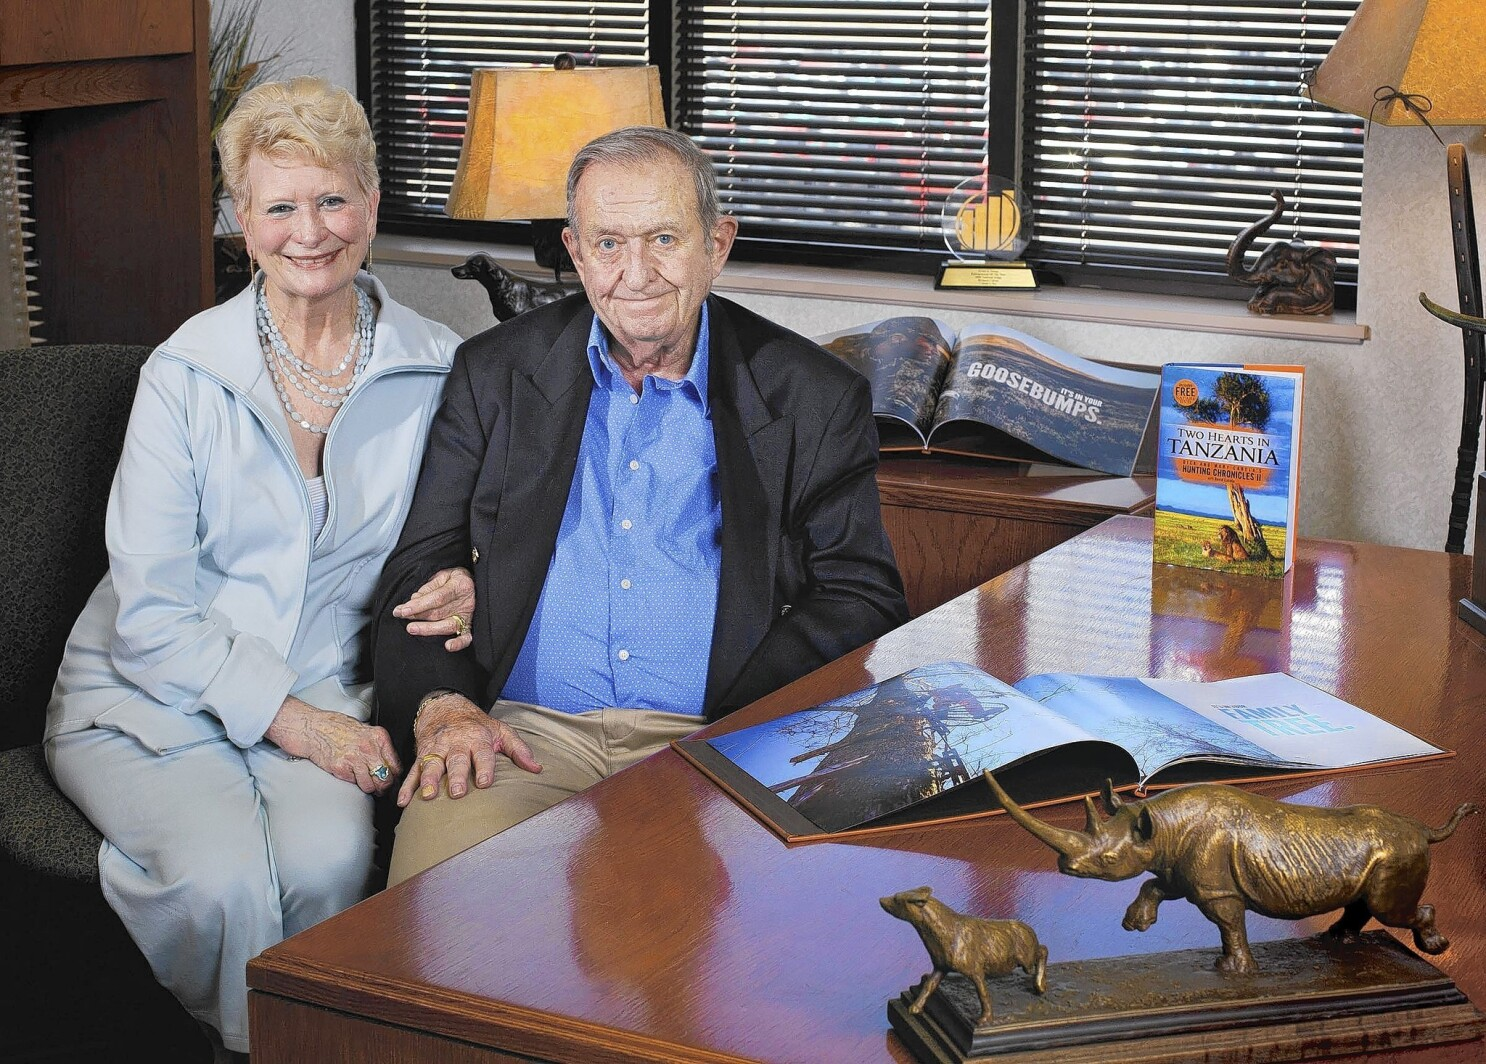 Dick Cabela Dies At 77 Co Founded Cabela S Sporting Goods Empire Los Angeles Times